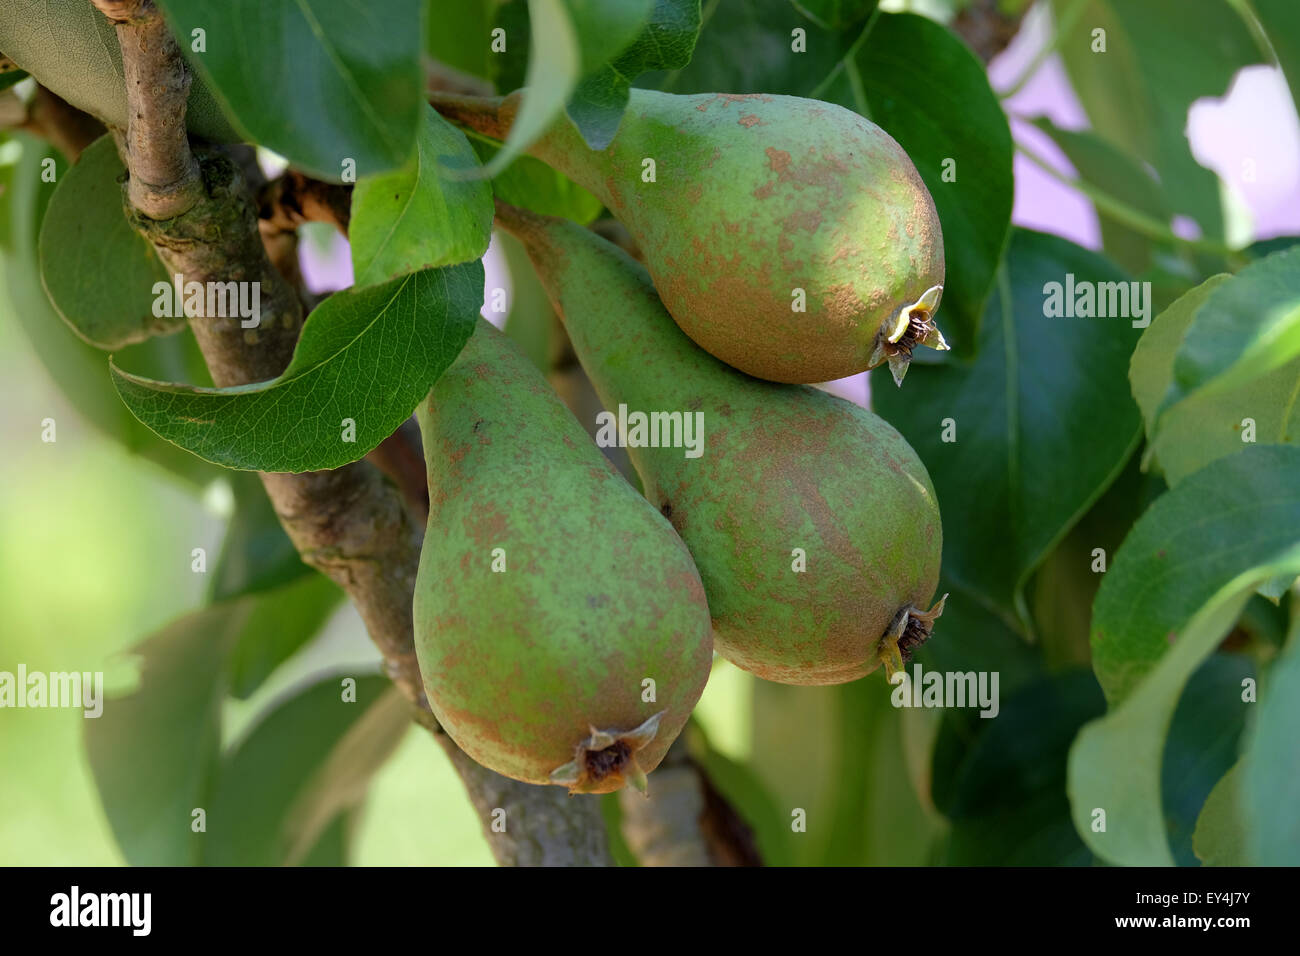 Doyenne-Du-Comice pears growing on the tree in the UK - Stock Image